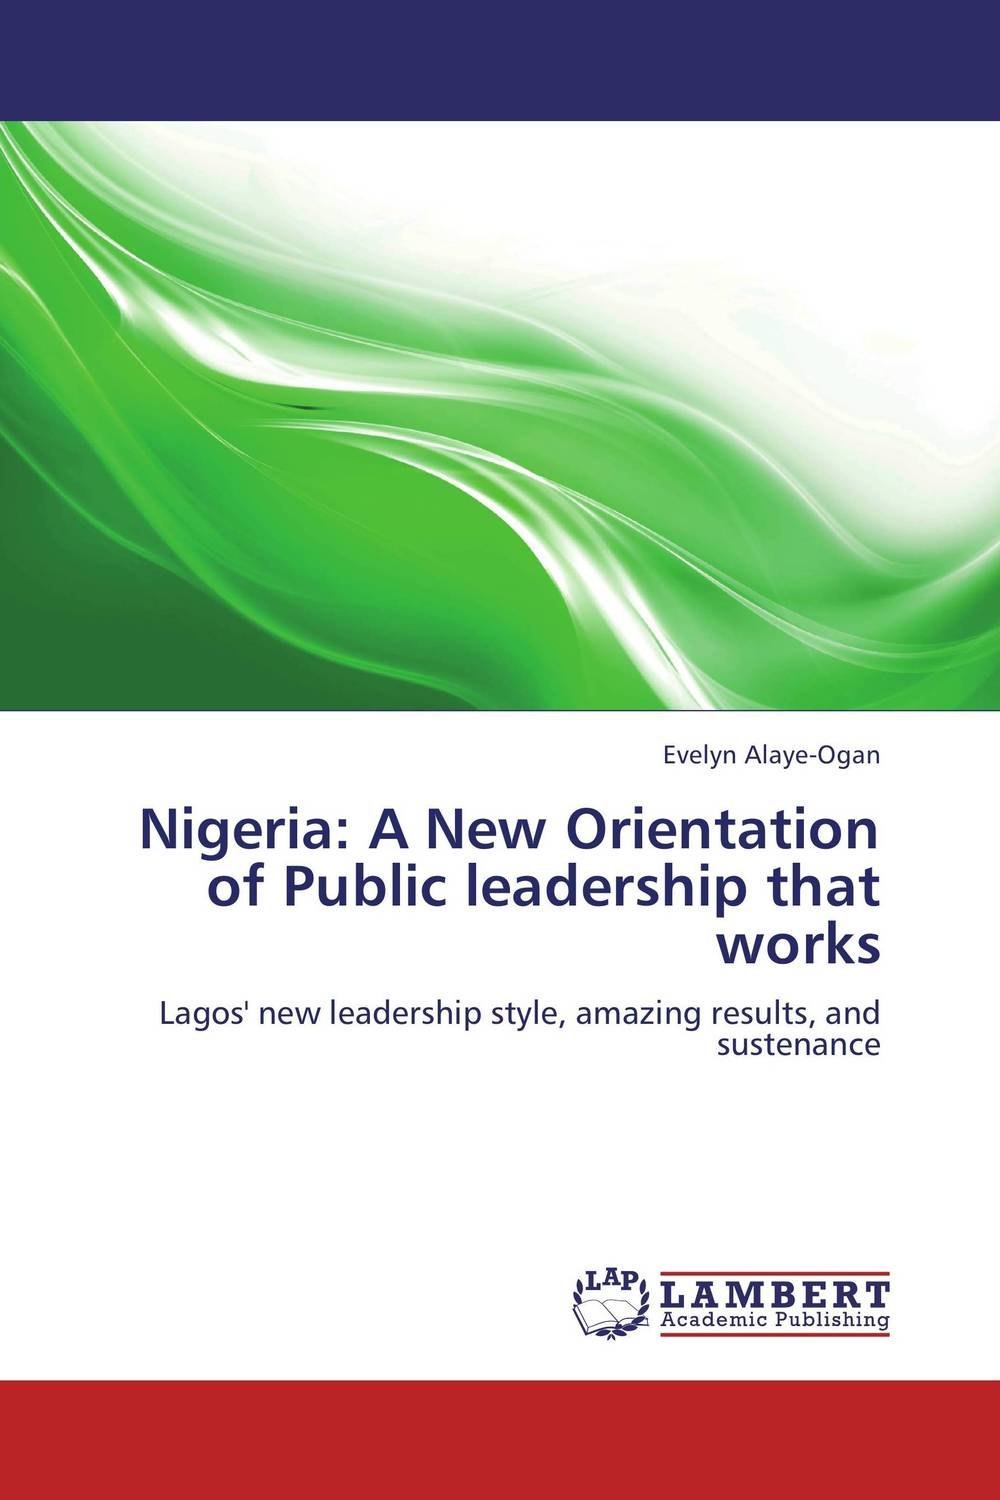 Nigeria: A New Orientation of Public leadership that works cheryl cran the art of change leadership